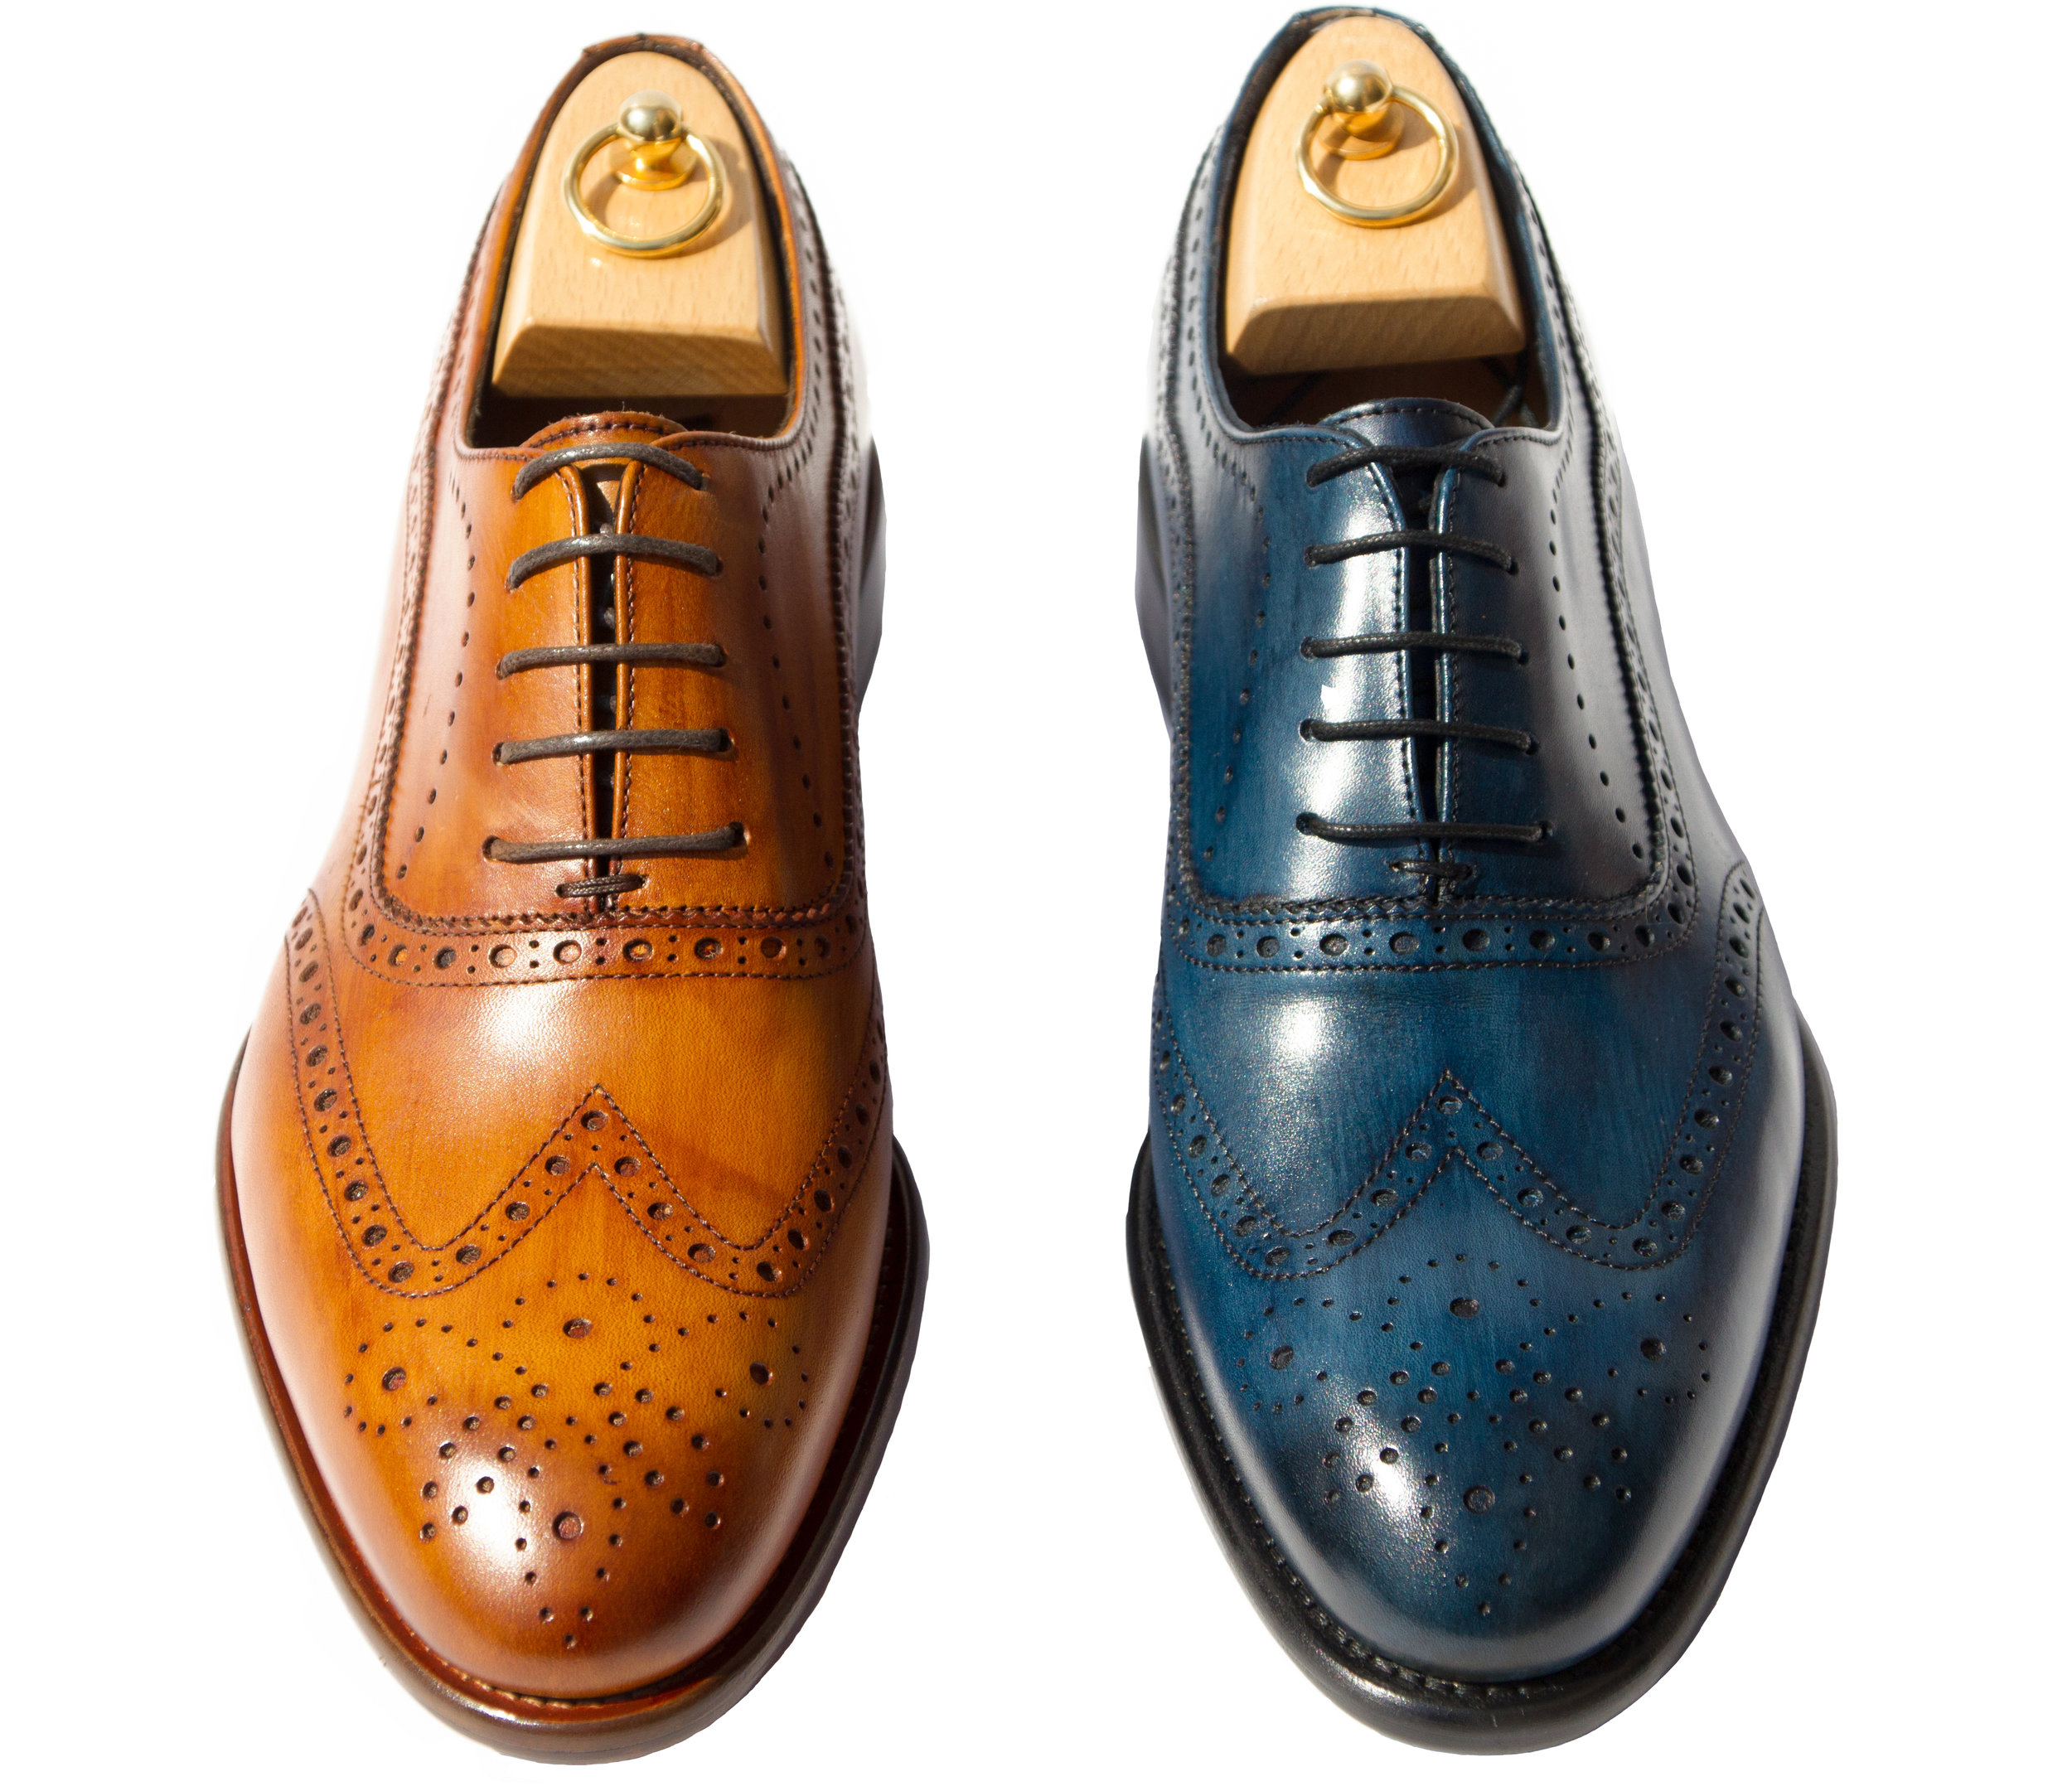 Style # H742: Dark Caramel, Ocean Blue  Handpainted Cayenne Calf Wingtip Balmoral  Sizes available: 8 to 14 US, including half sizes